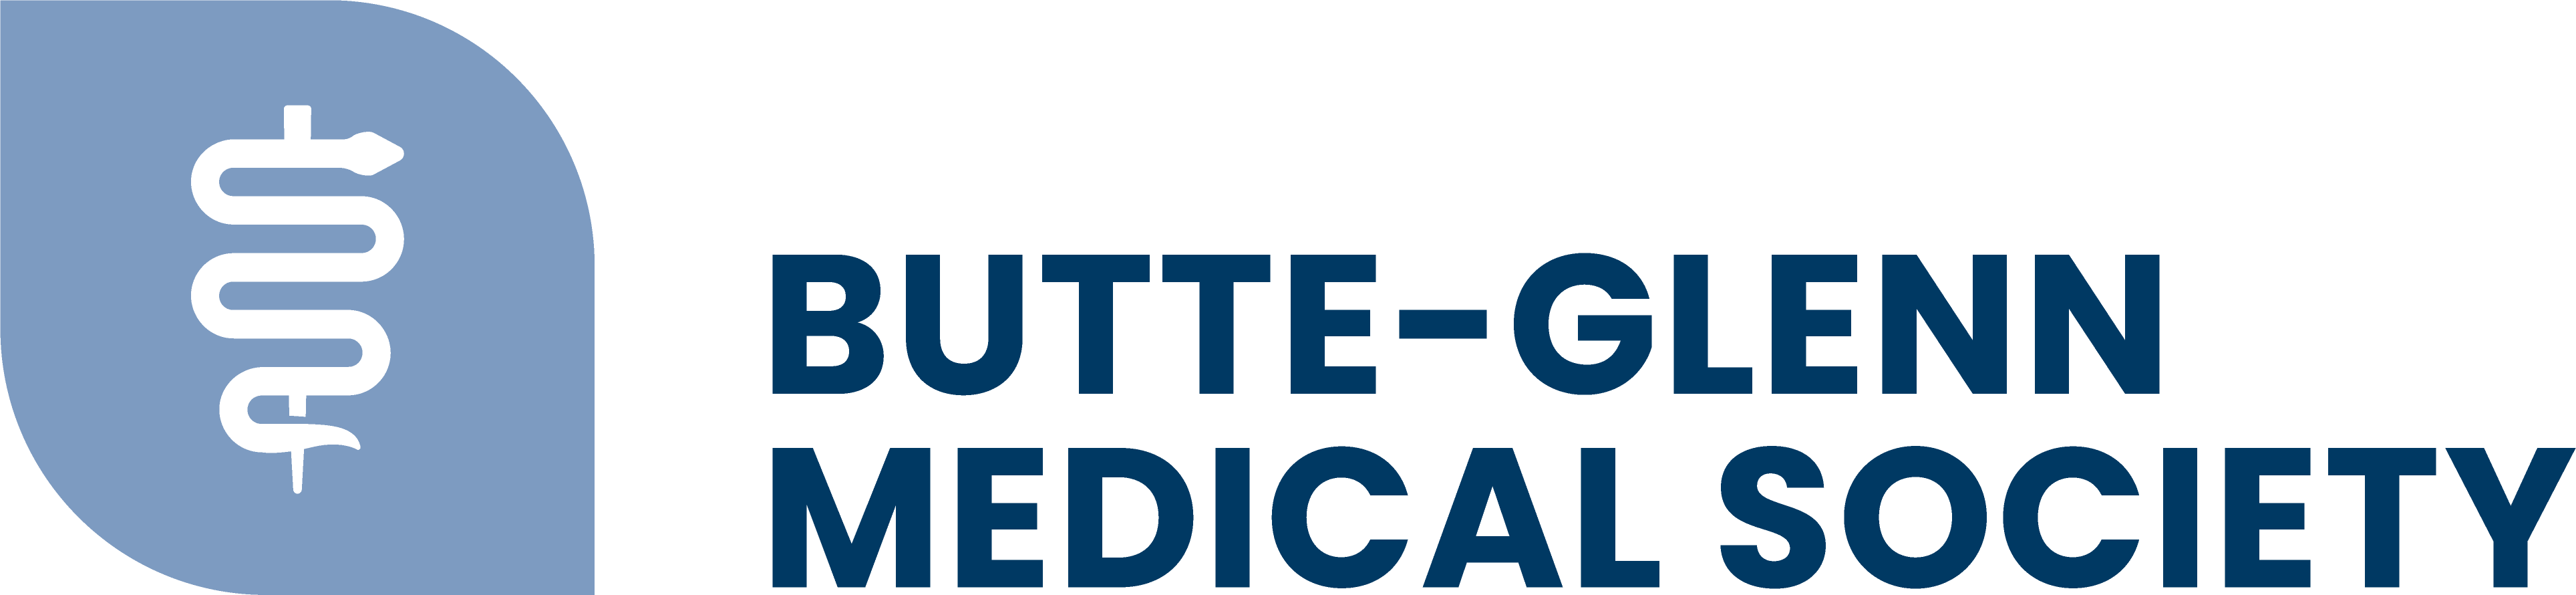 Butte Glenn Medical Society